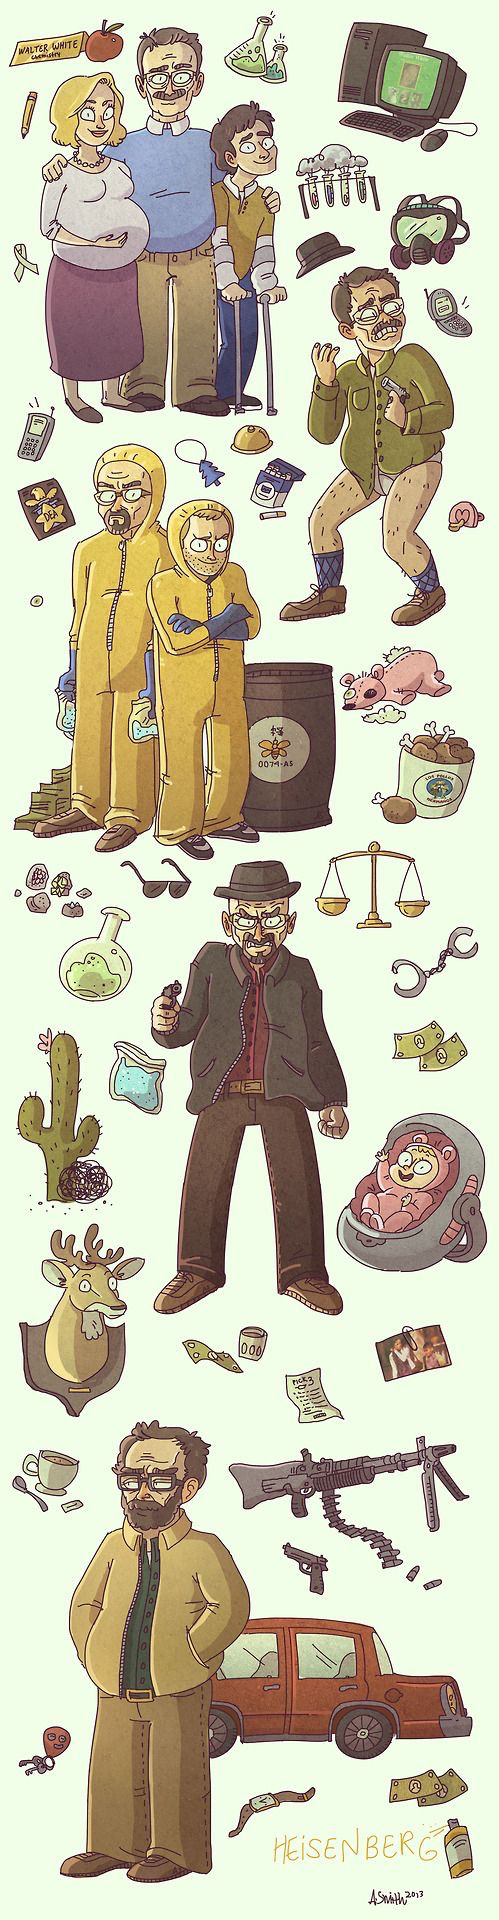 Changing personality of Walter White 🤓